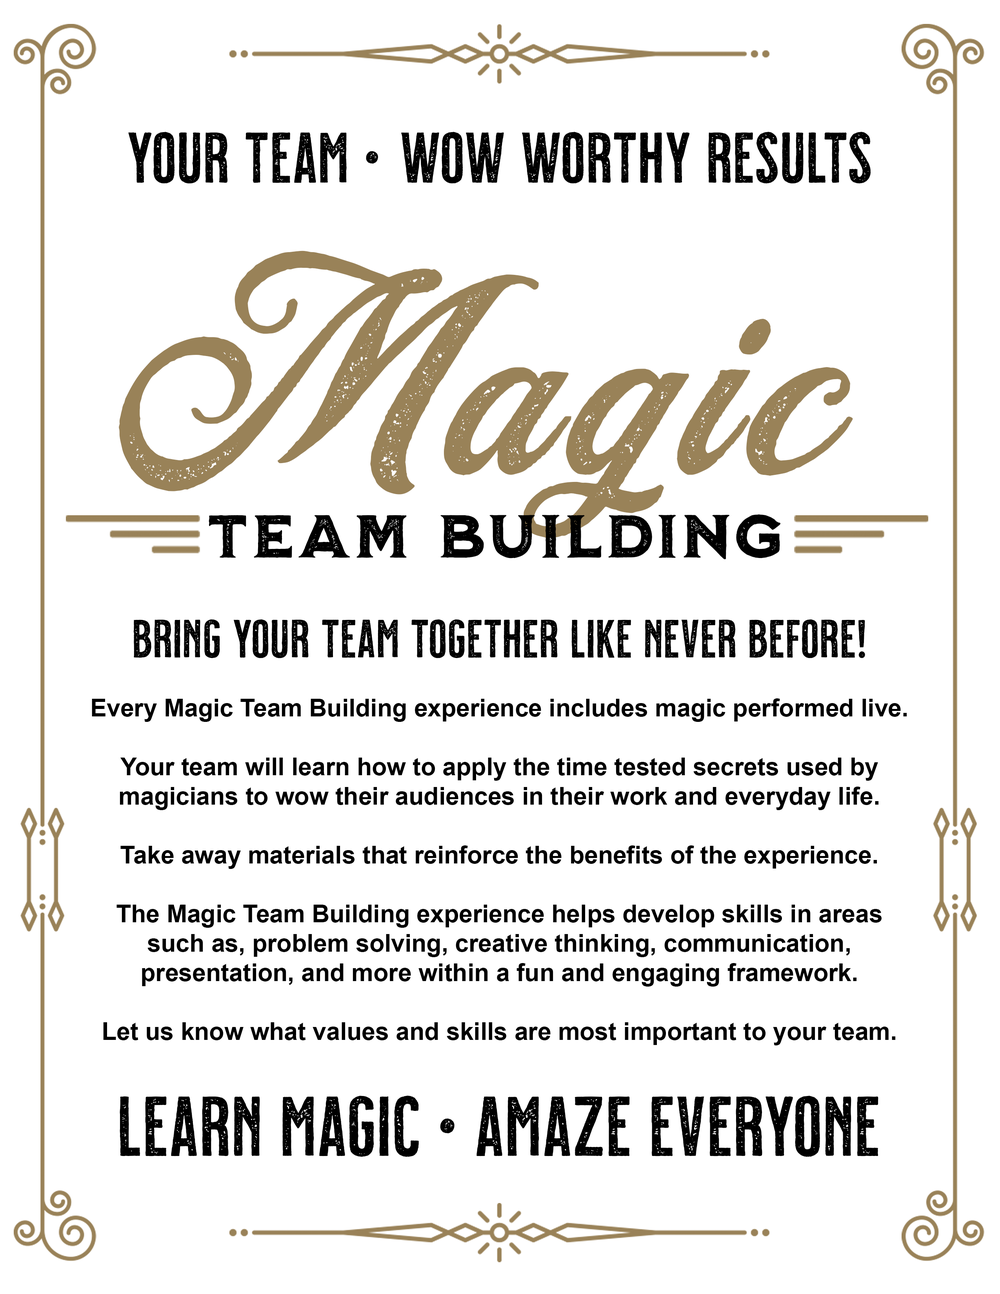 MagicTeamBuilding-1Pager.png